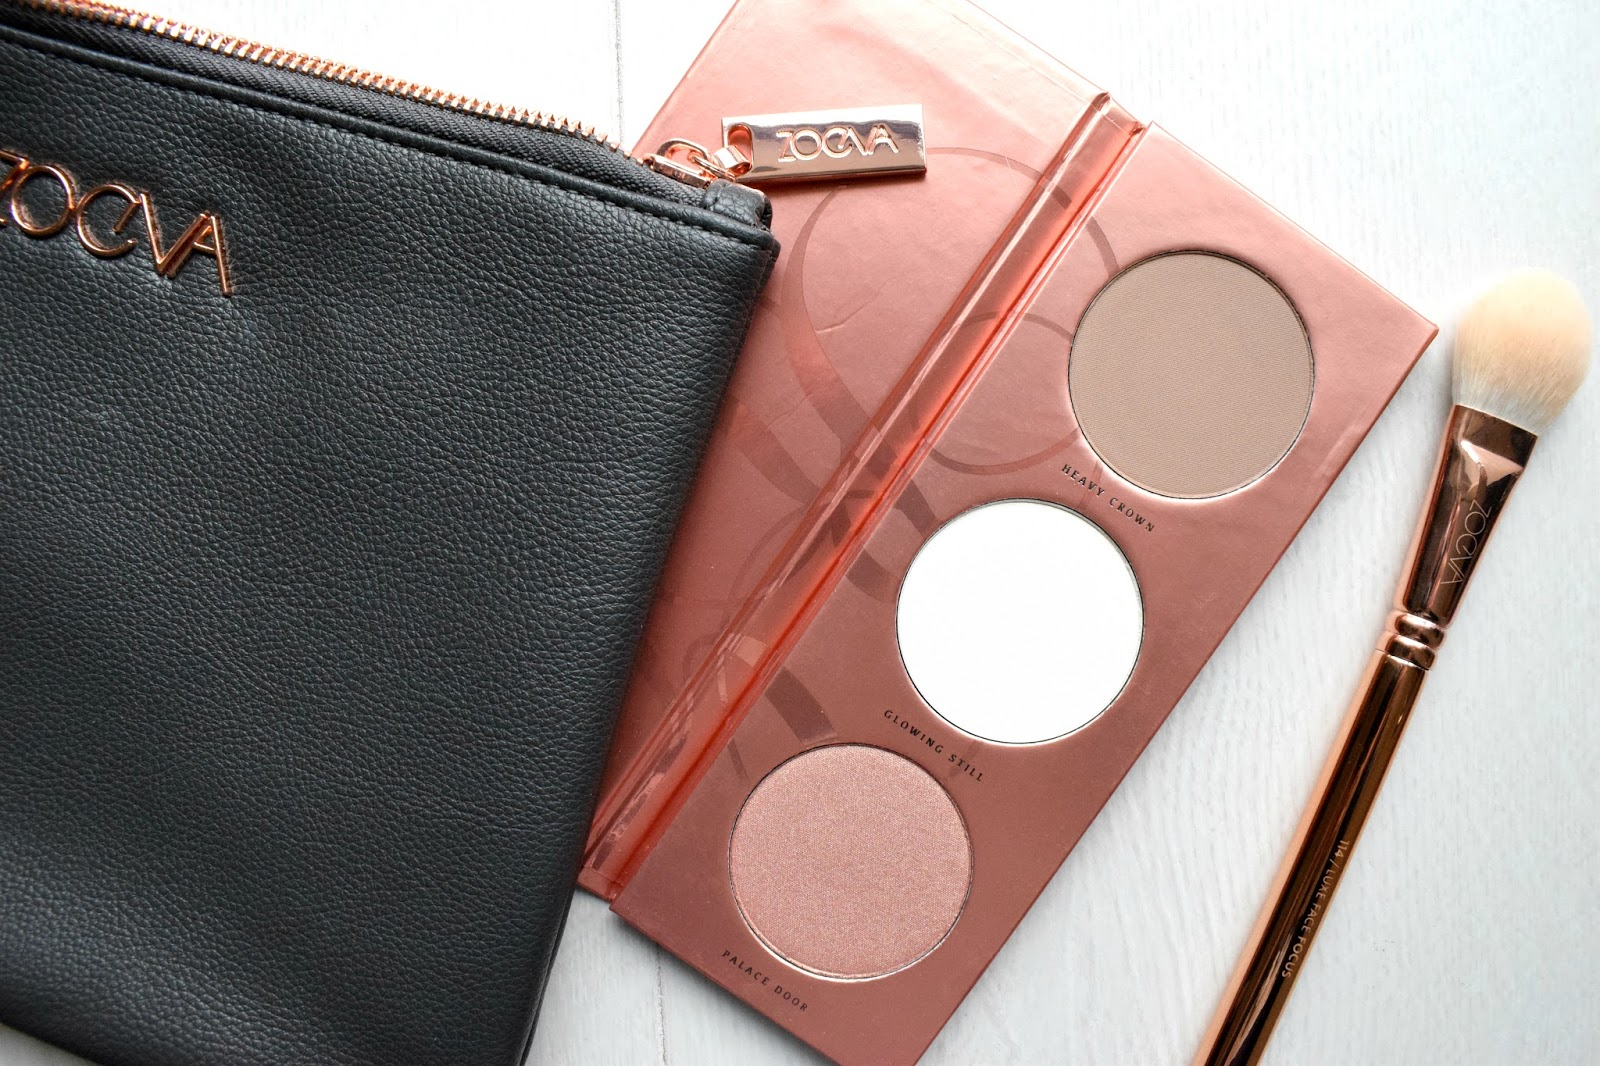 Zoeva Rose Golden Blush Review Palette UK Beauty Blog